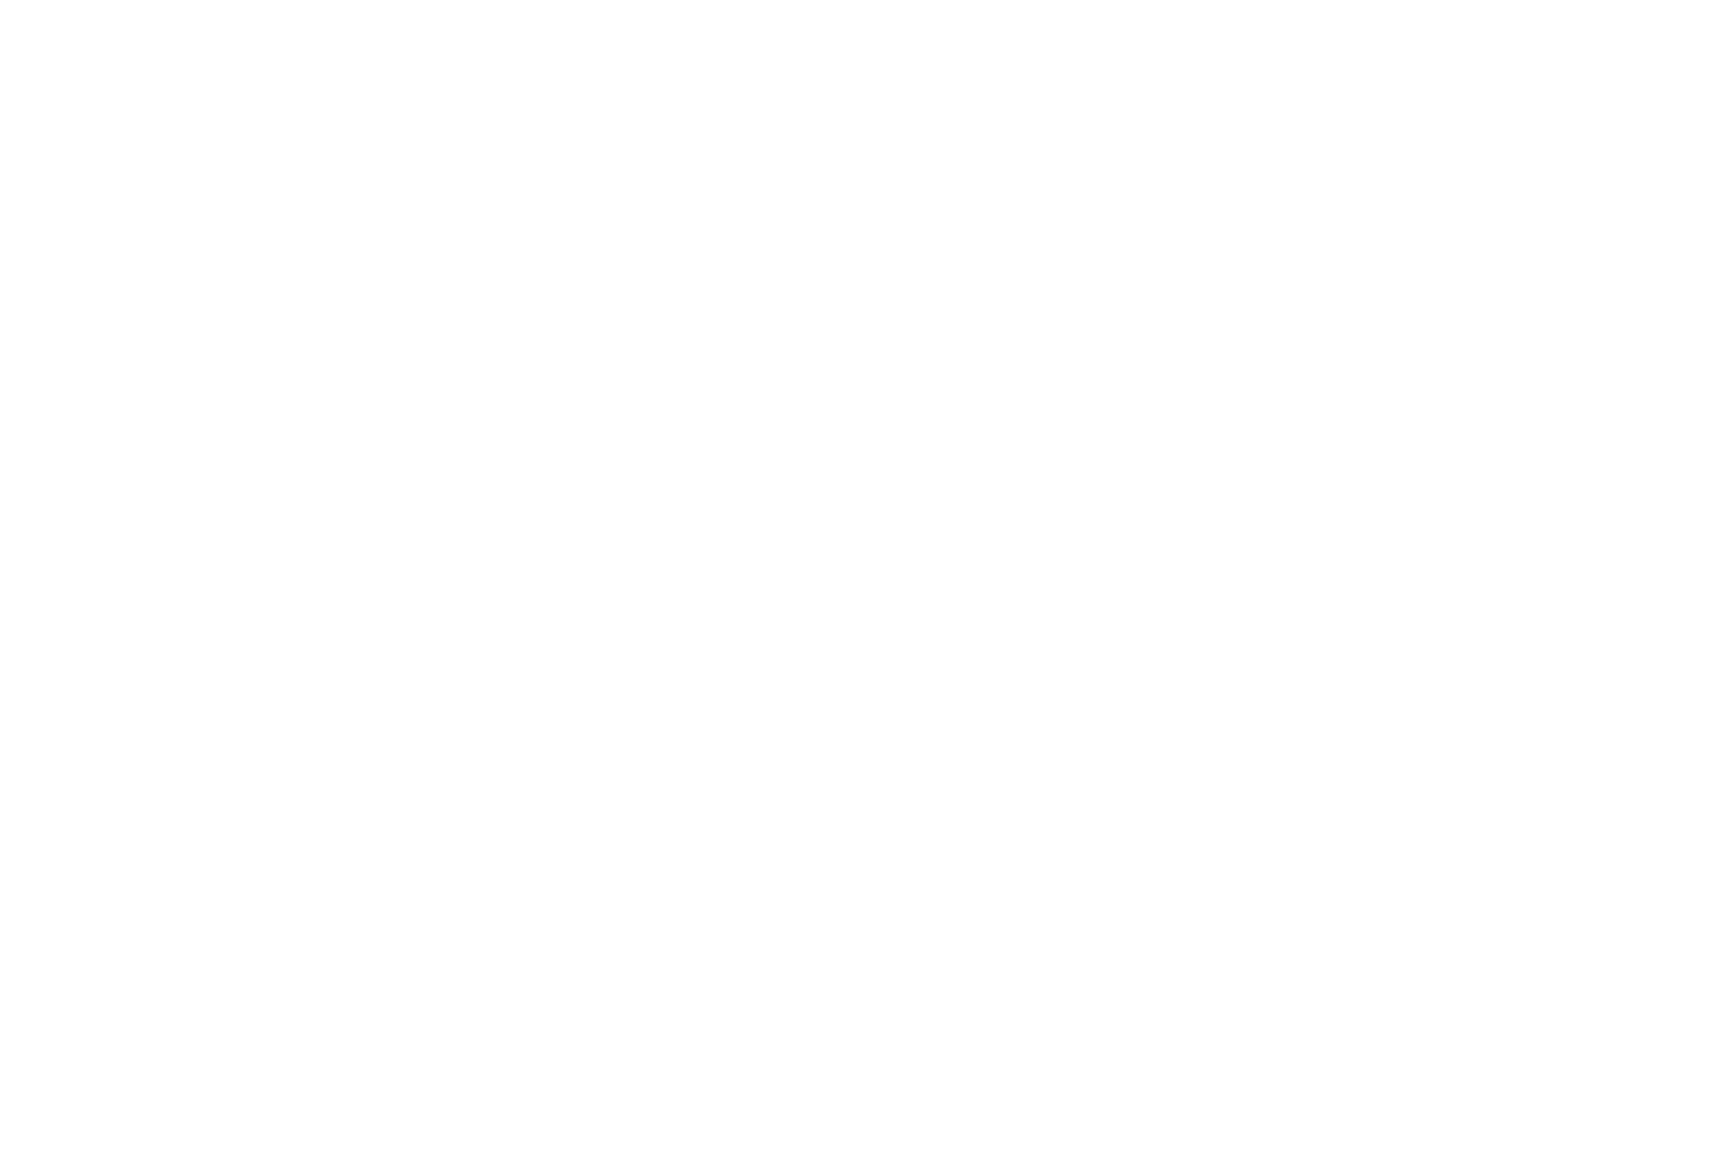 OFFICIAL SELECTION - Boston Science Fiction Film Festival - 2019.png